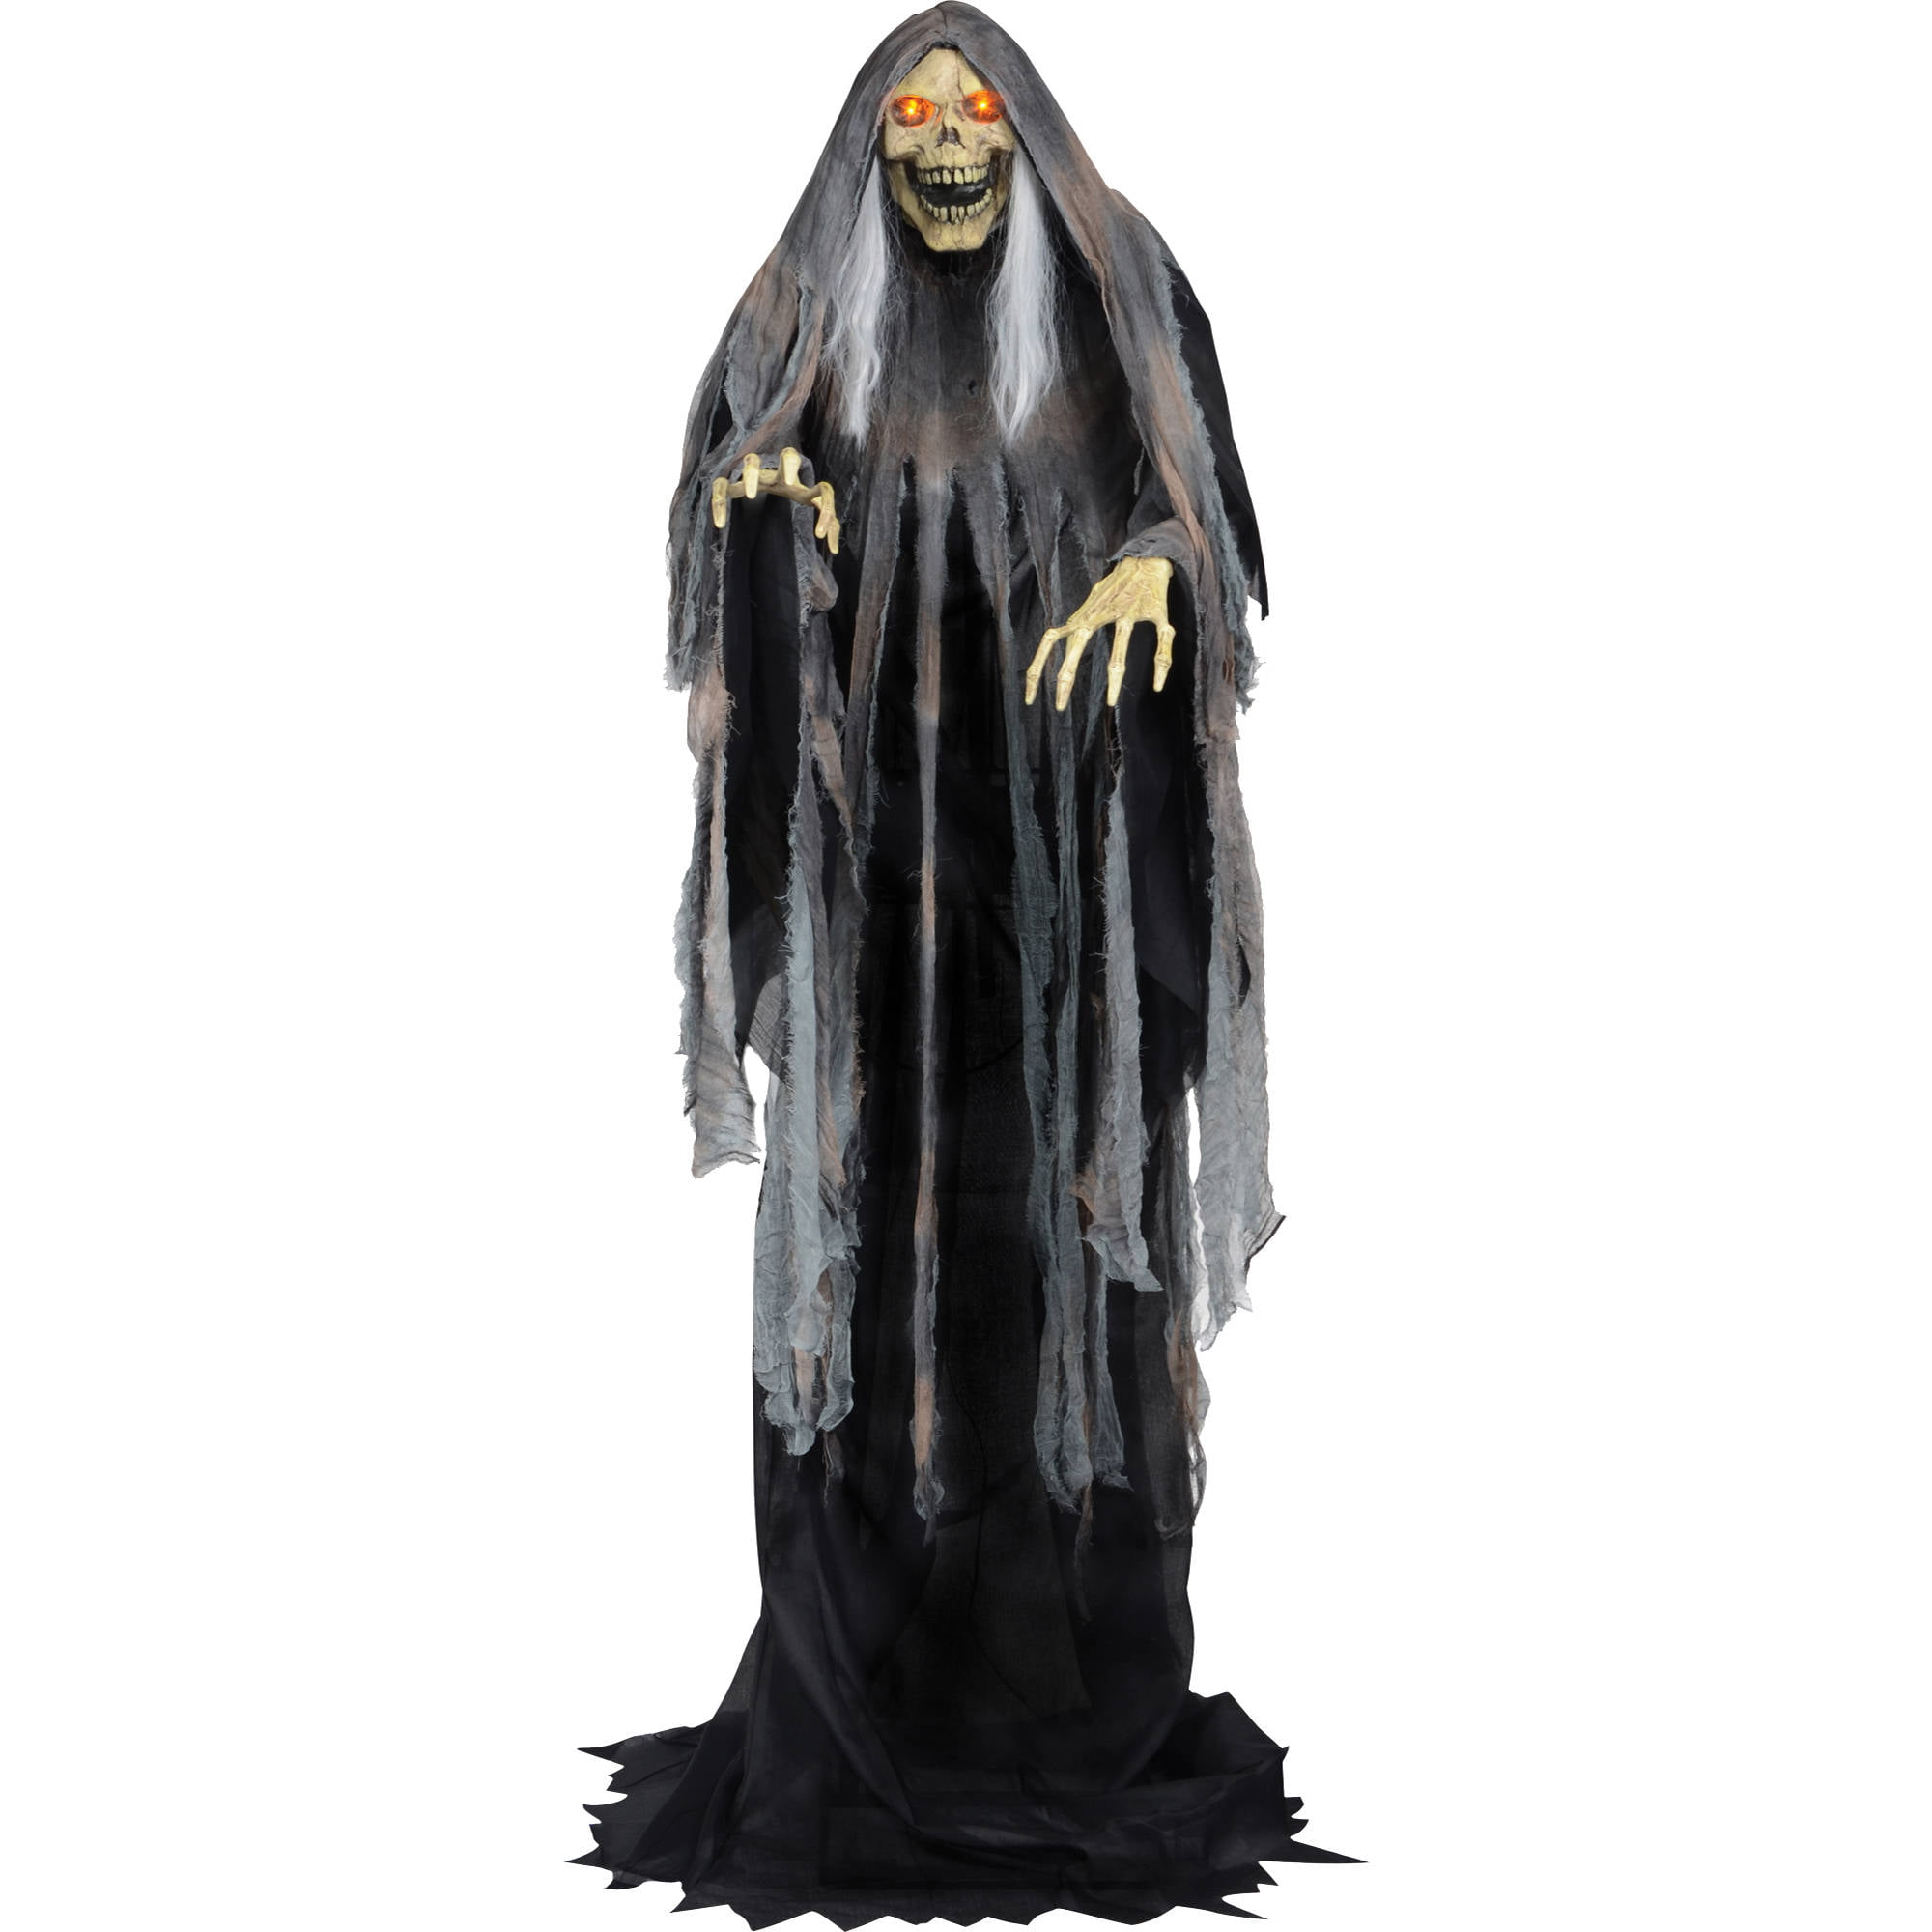 bog reaper rising animated halloween decoration walmartcom - Walmart Halloween Decorations